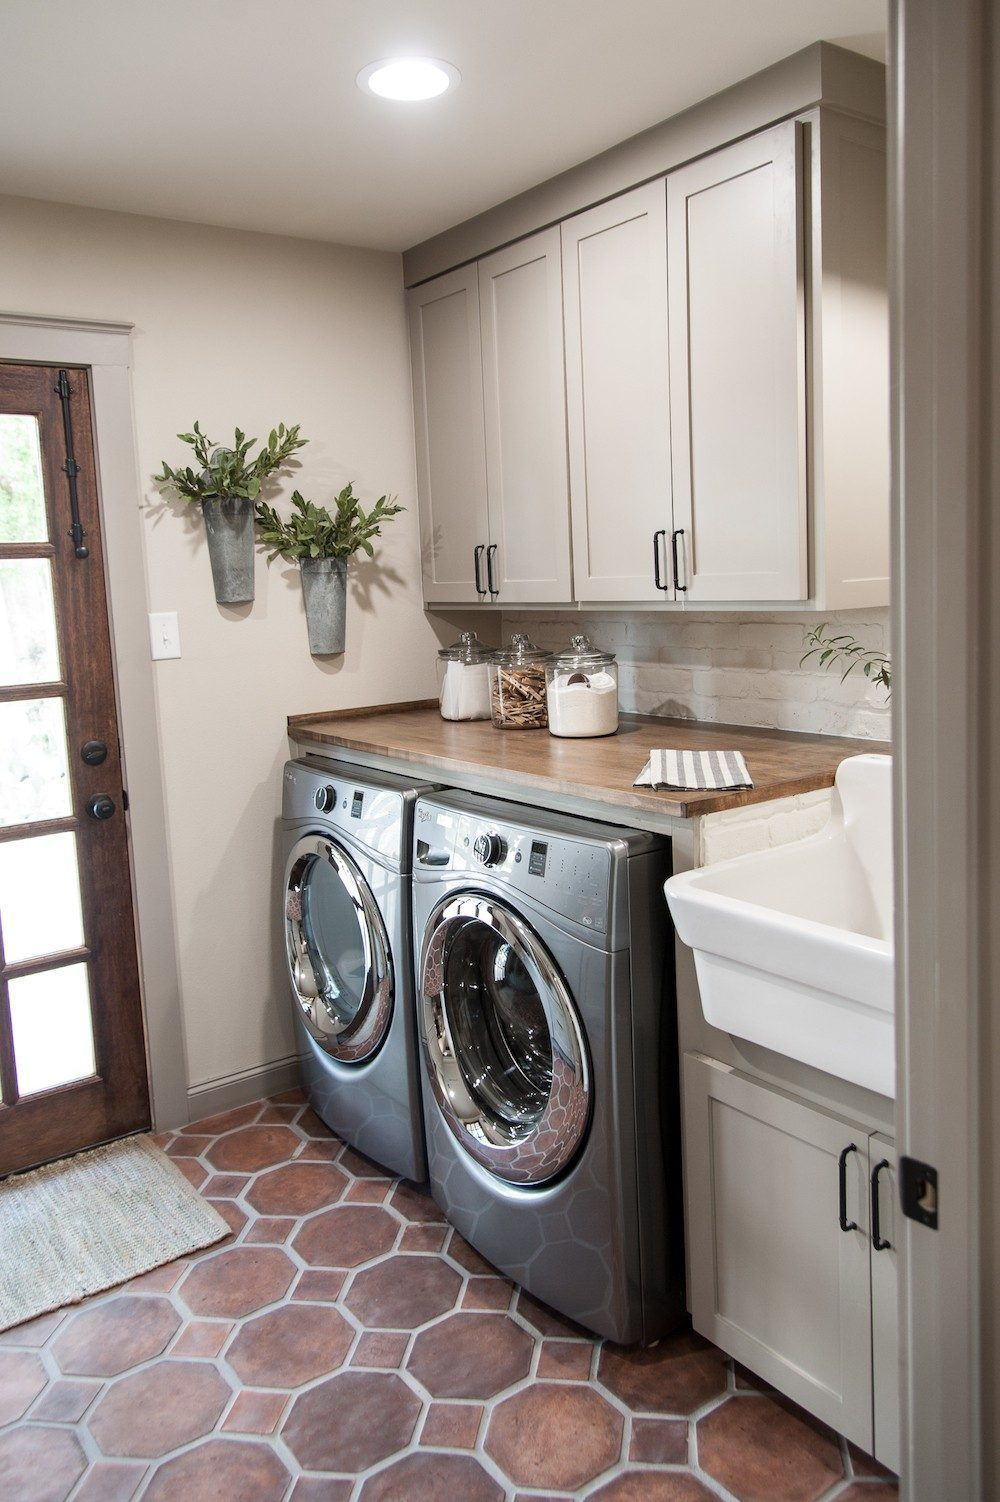 unfinished basement laundry room makeover. More Ideas Below: Unfinished Basement Laundry Room Layout Ideas Before And  After Makeover DIY Organization Small Unfinished Basement Makeover A